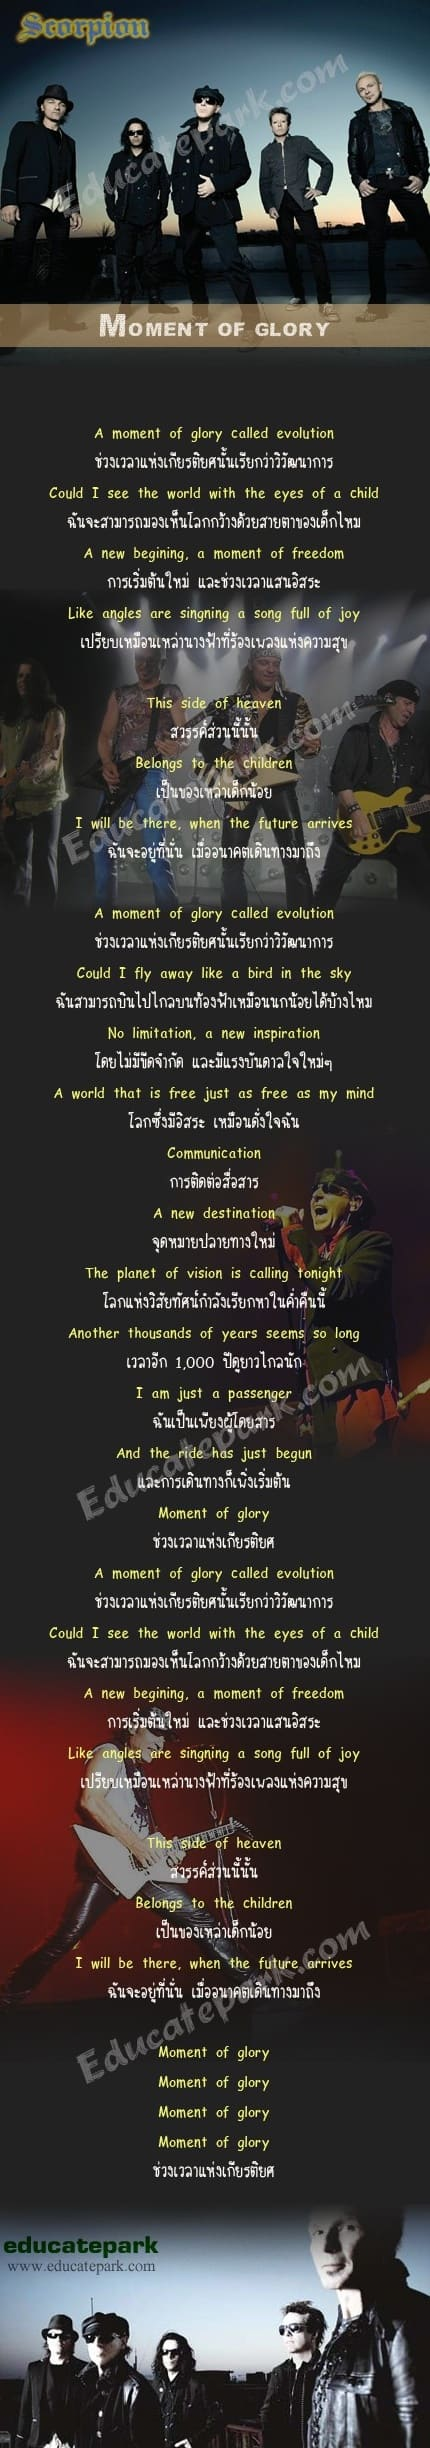 แปลเพลง Moment Of Glory - Scorpions, Berlin Philharmonic Orchestra